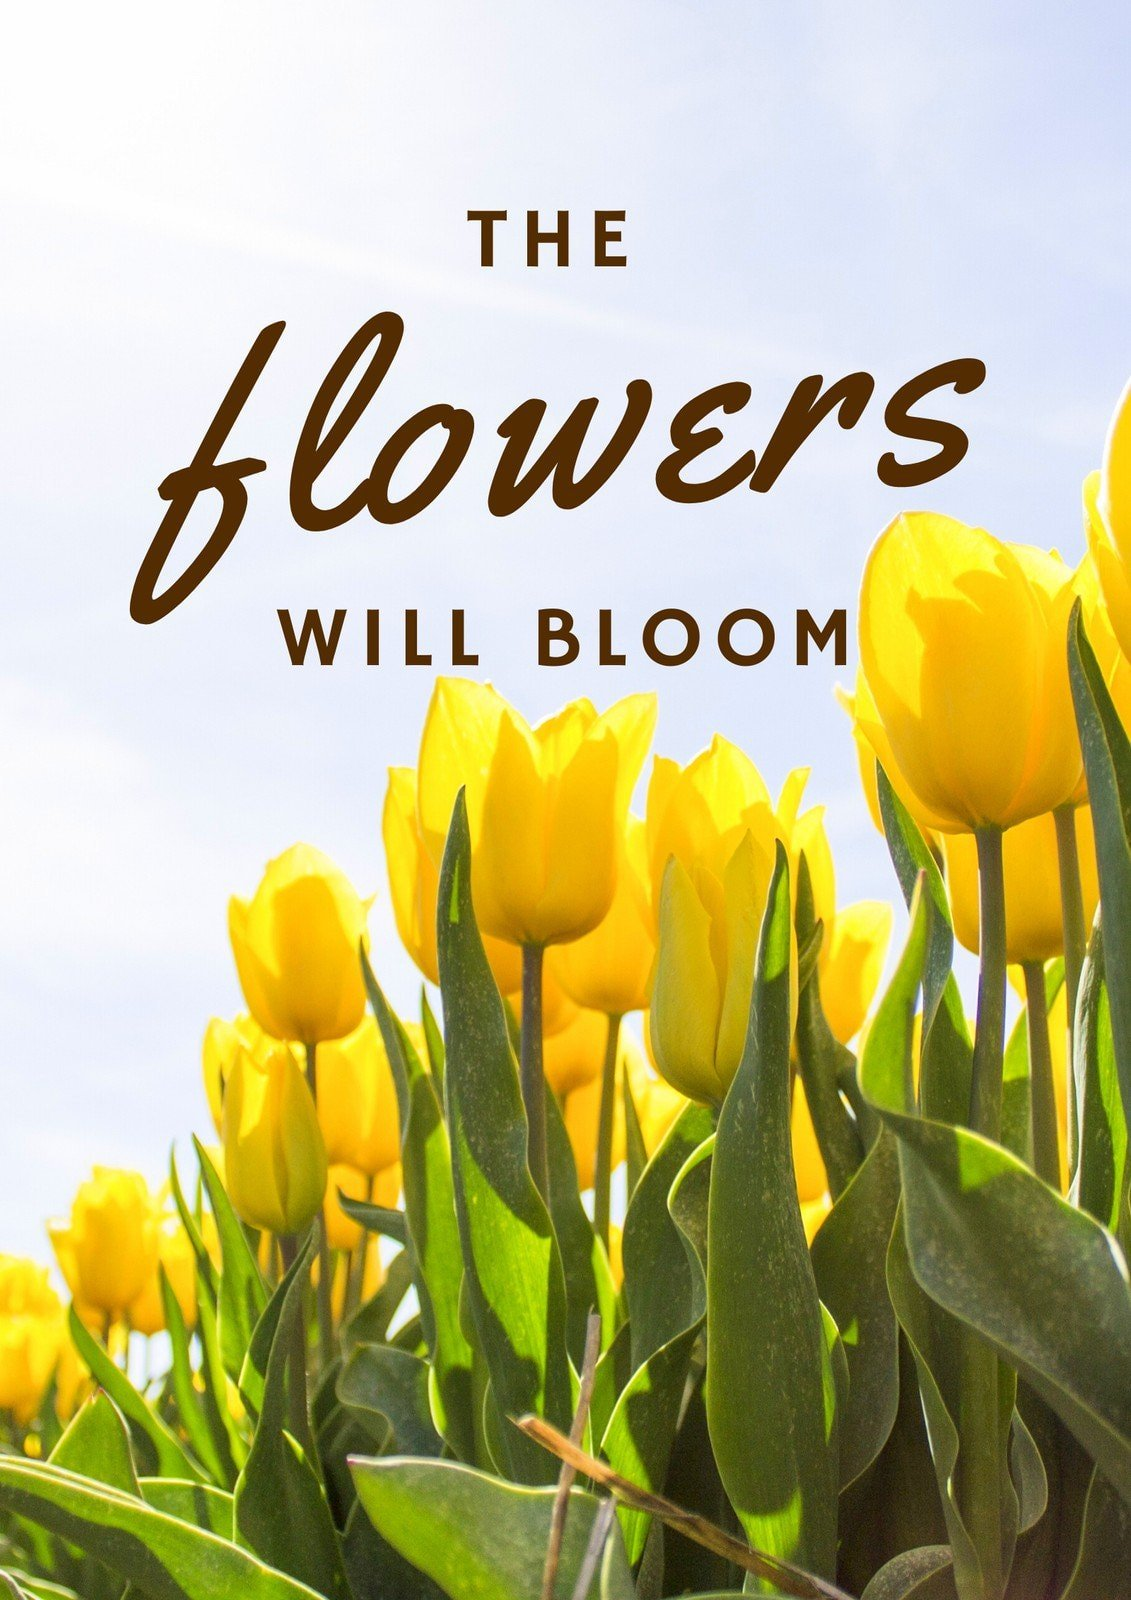 The Flowers Will Bloom.